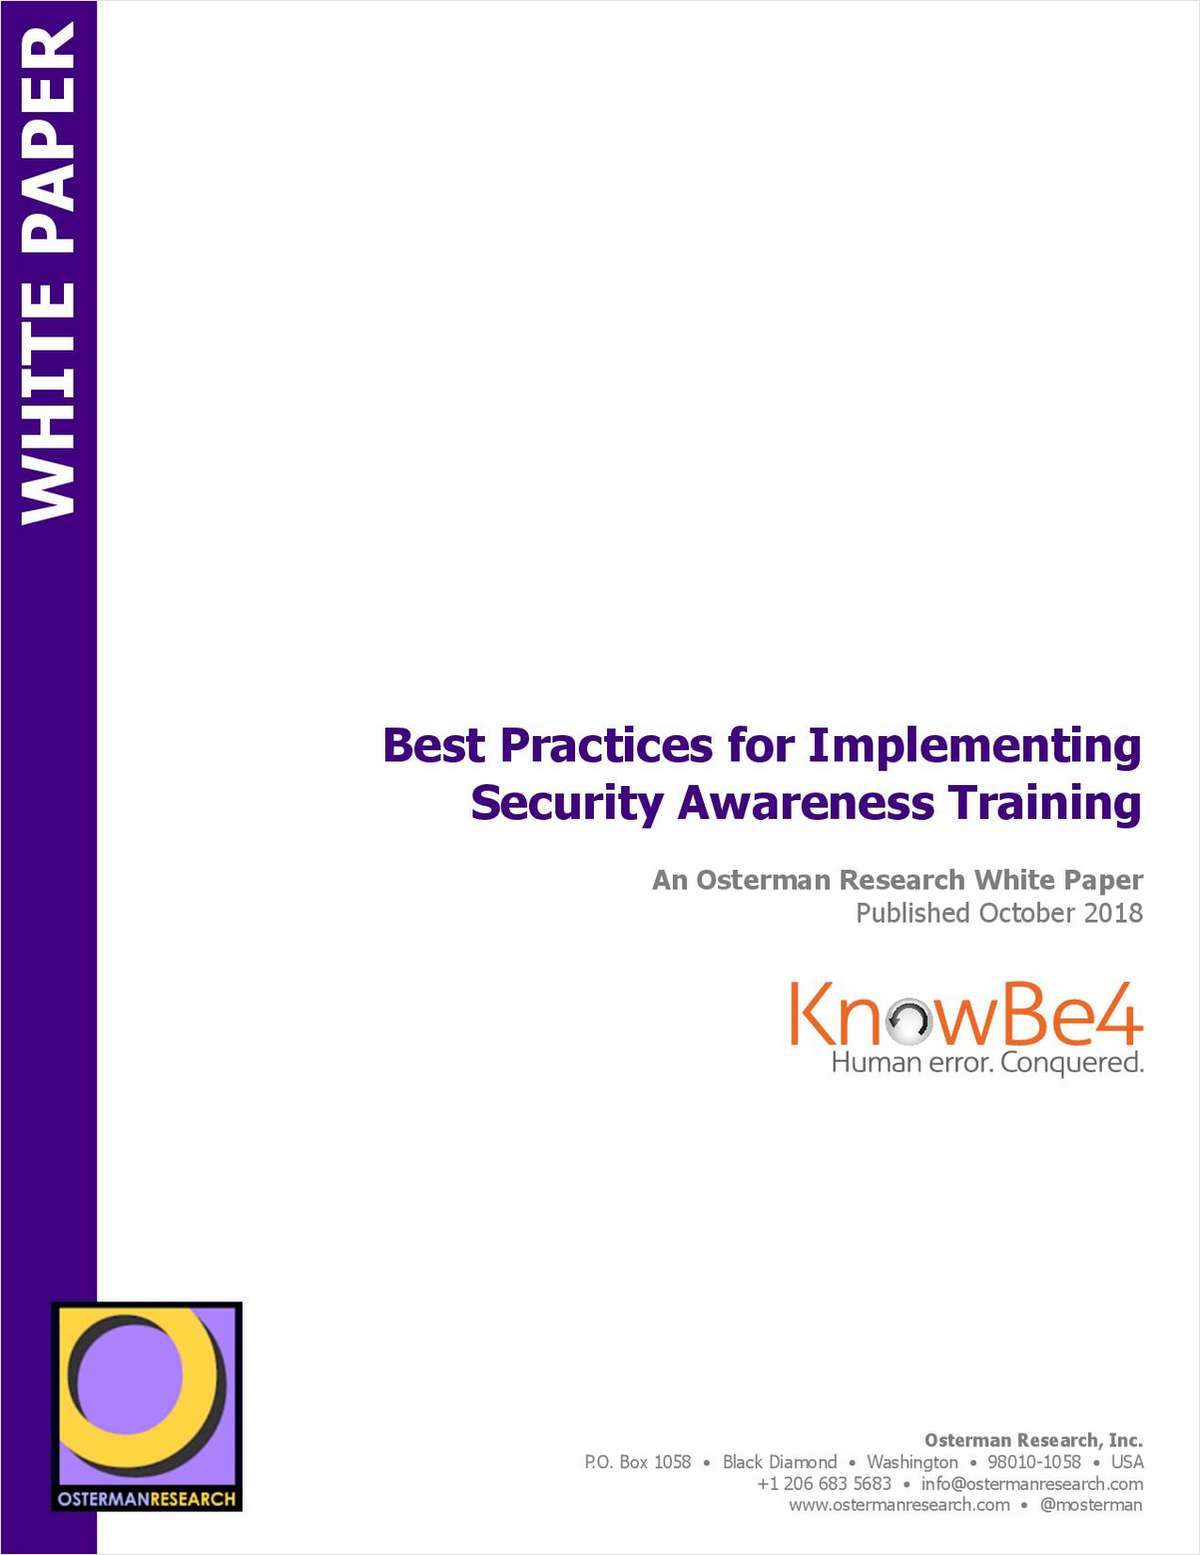 Best Practices for Implementing Security Awareness Training